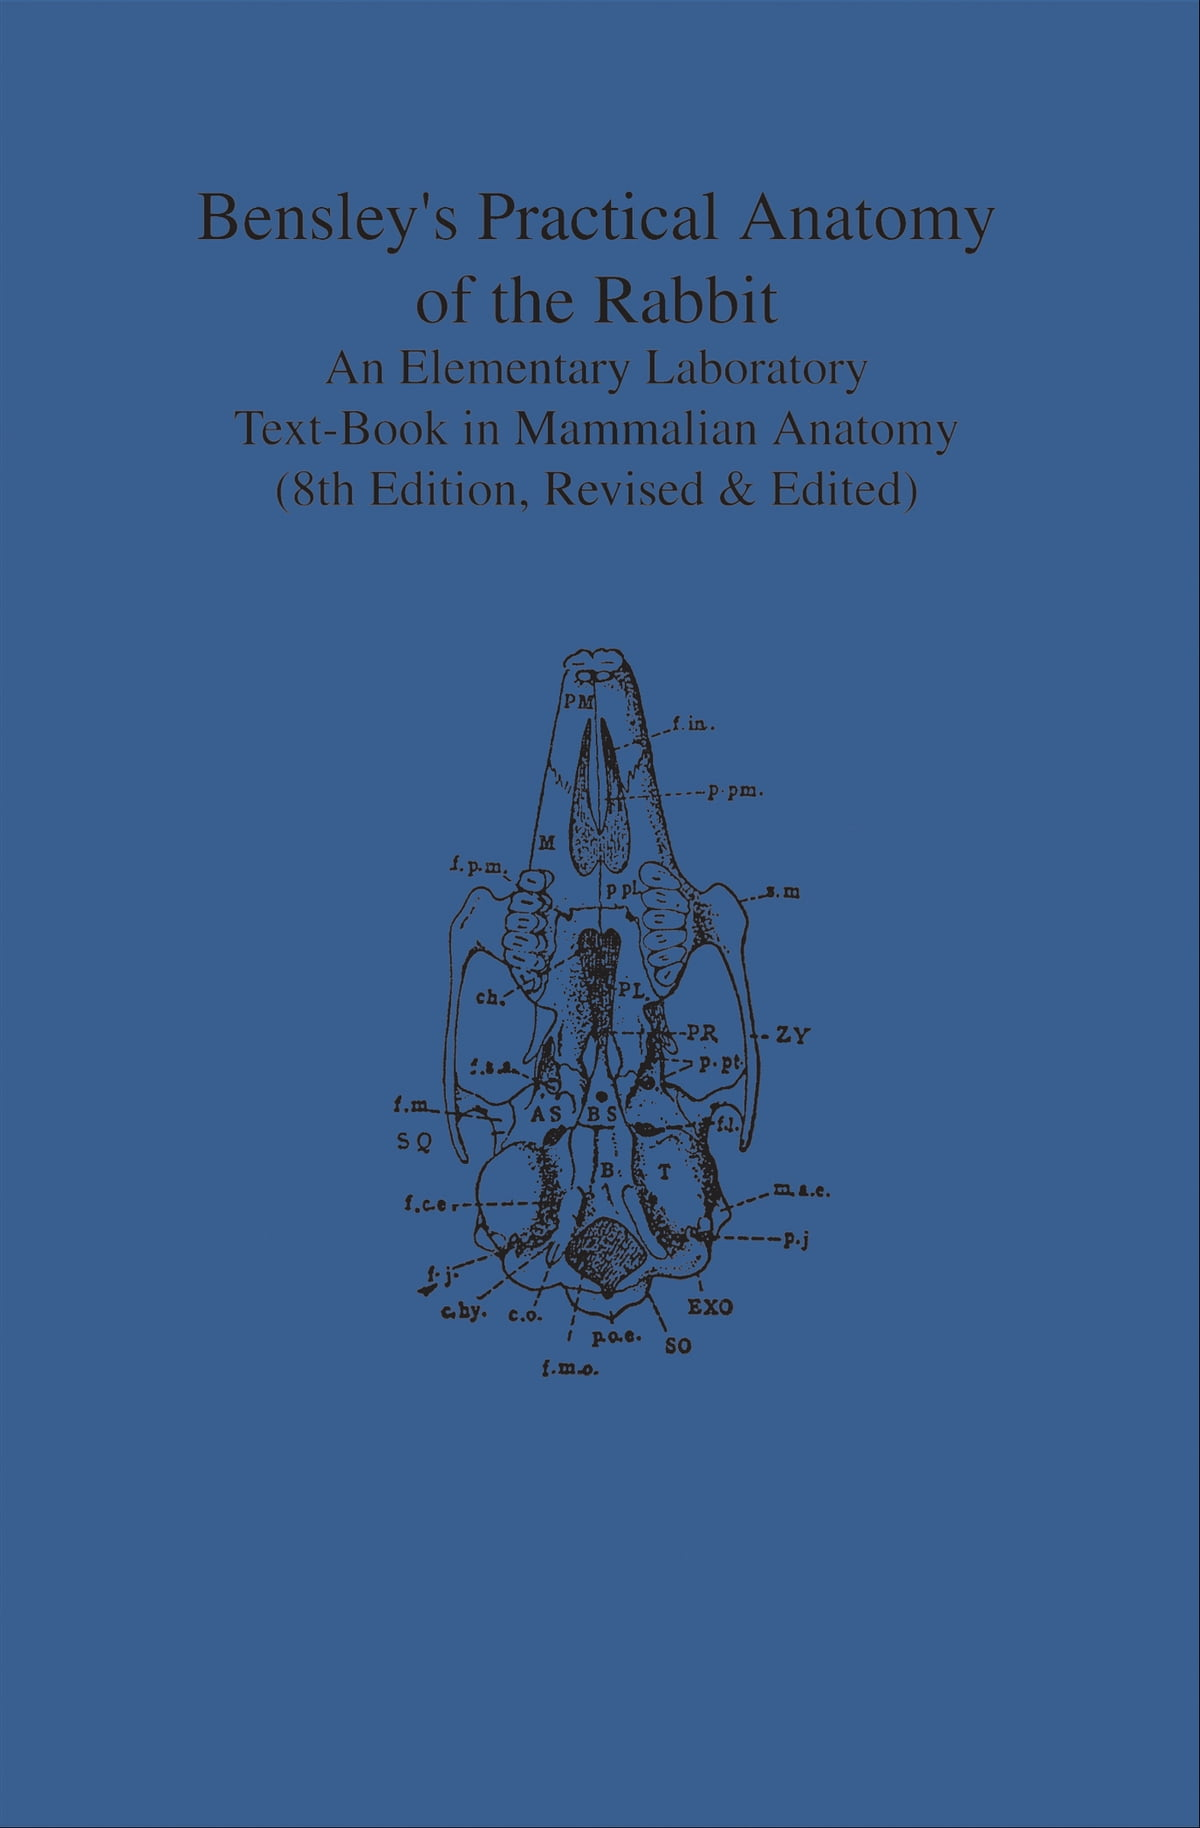 Bensleys Practical Anatomy Of The Rabbit Ebook By 9781442637764